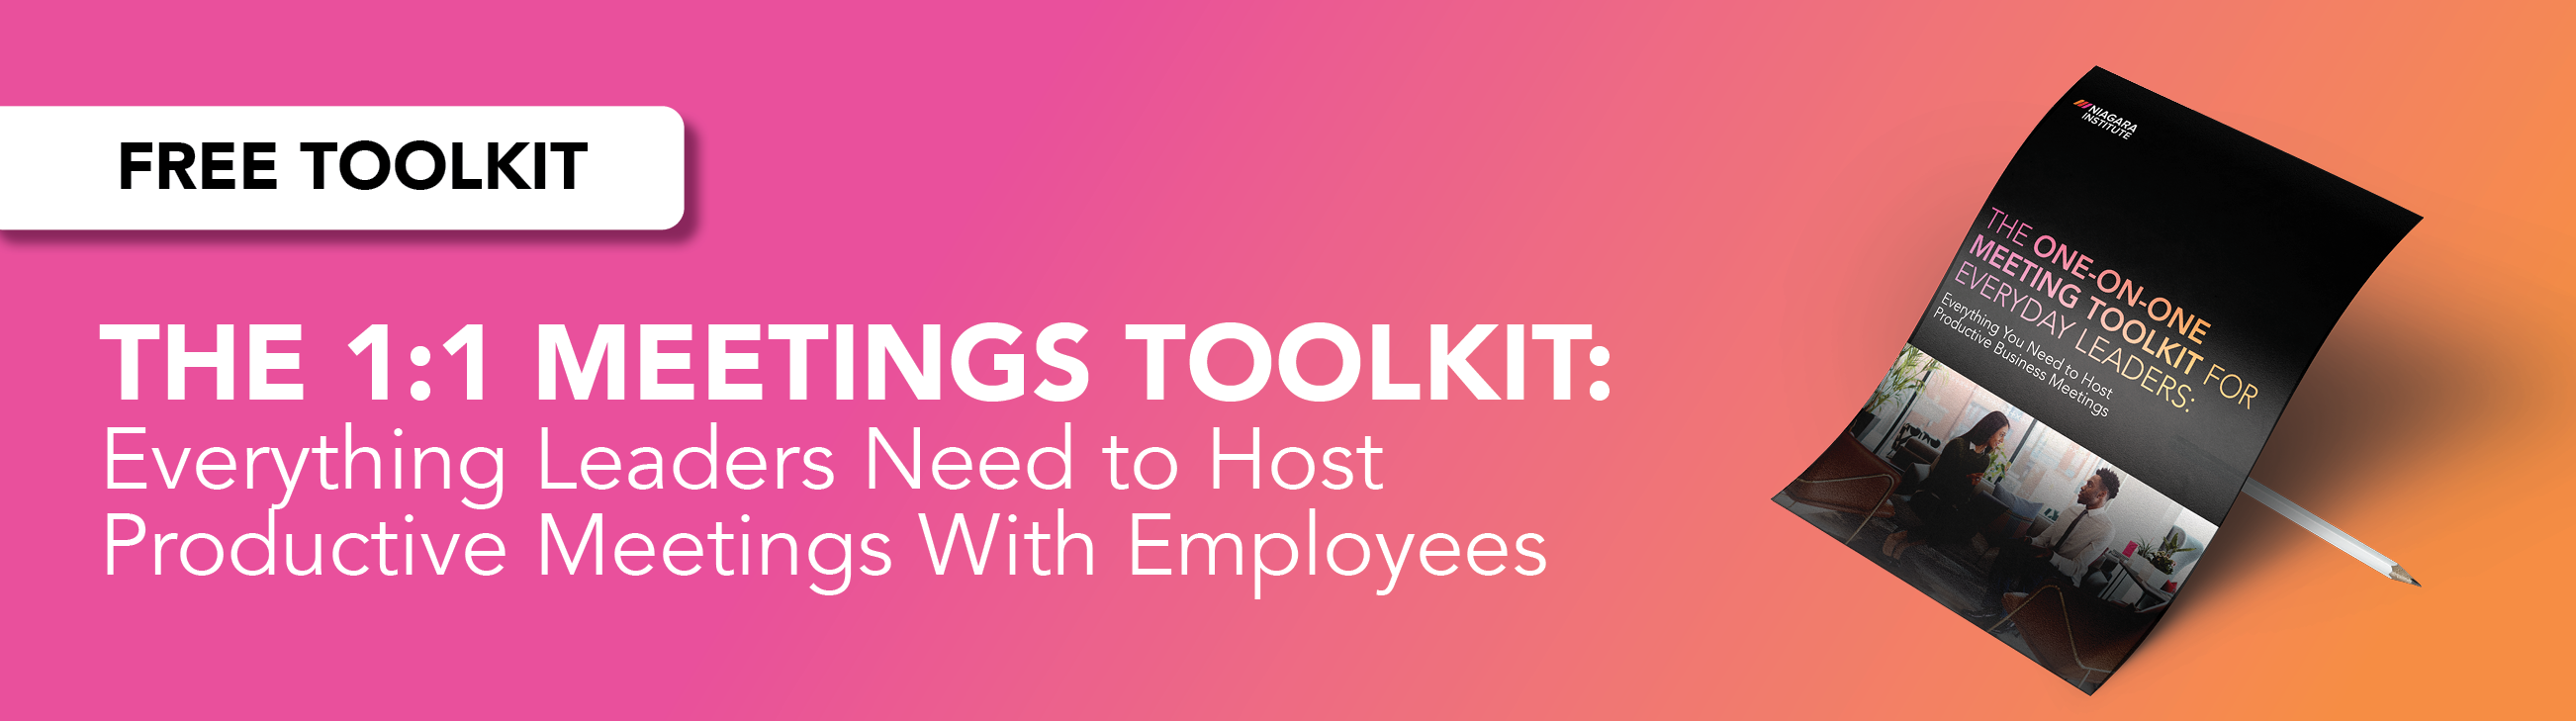 Download the free leadership toolkit for one-on-one meetings with employees